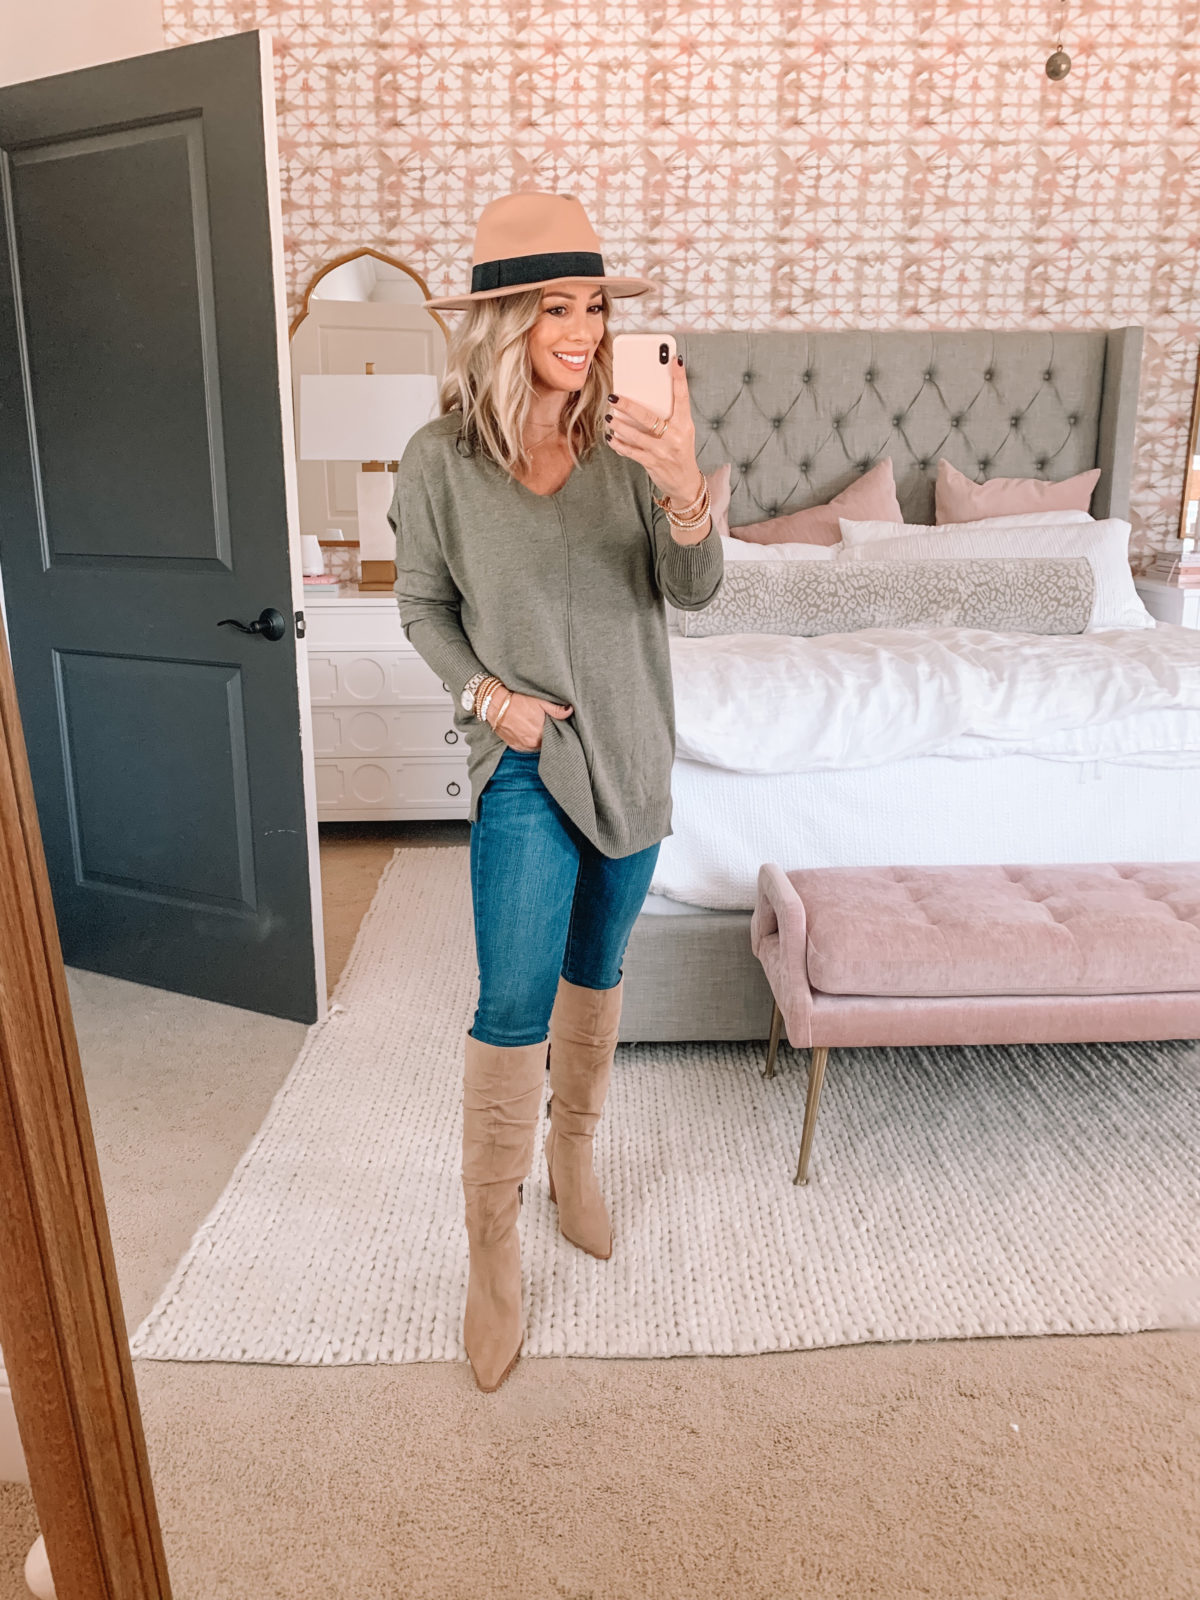 Amazon Fashion Faves, Sweater, Jeans, Knee High Boots, Hat